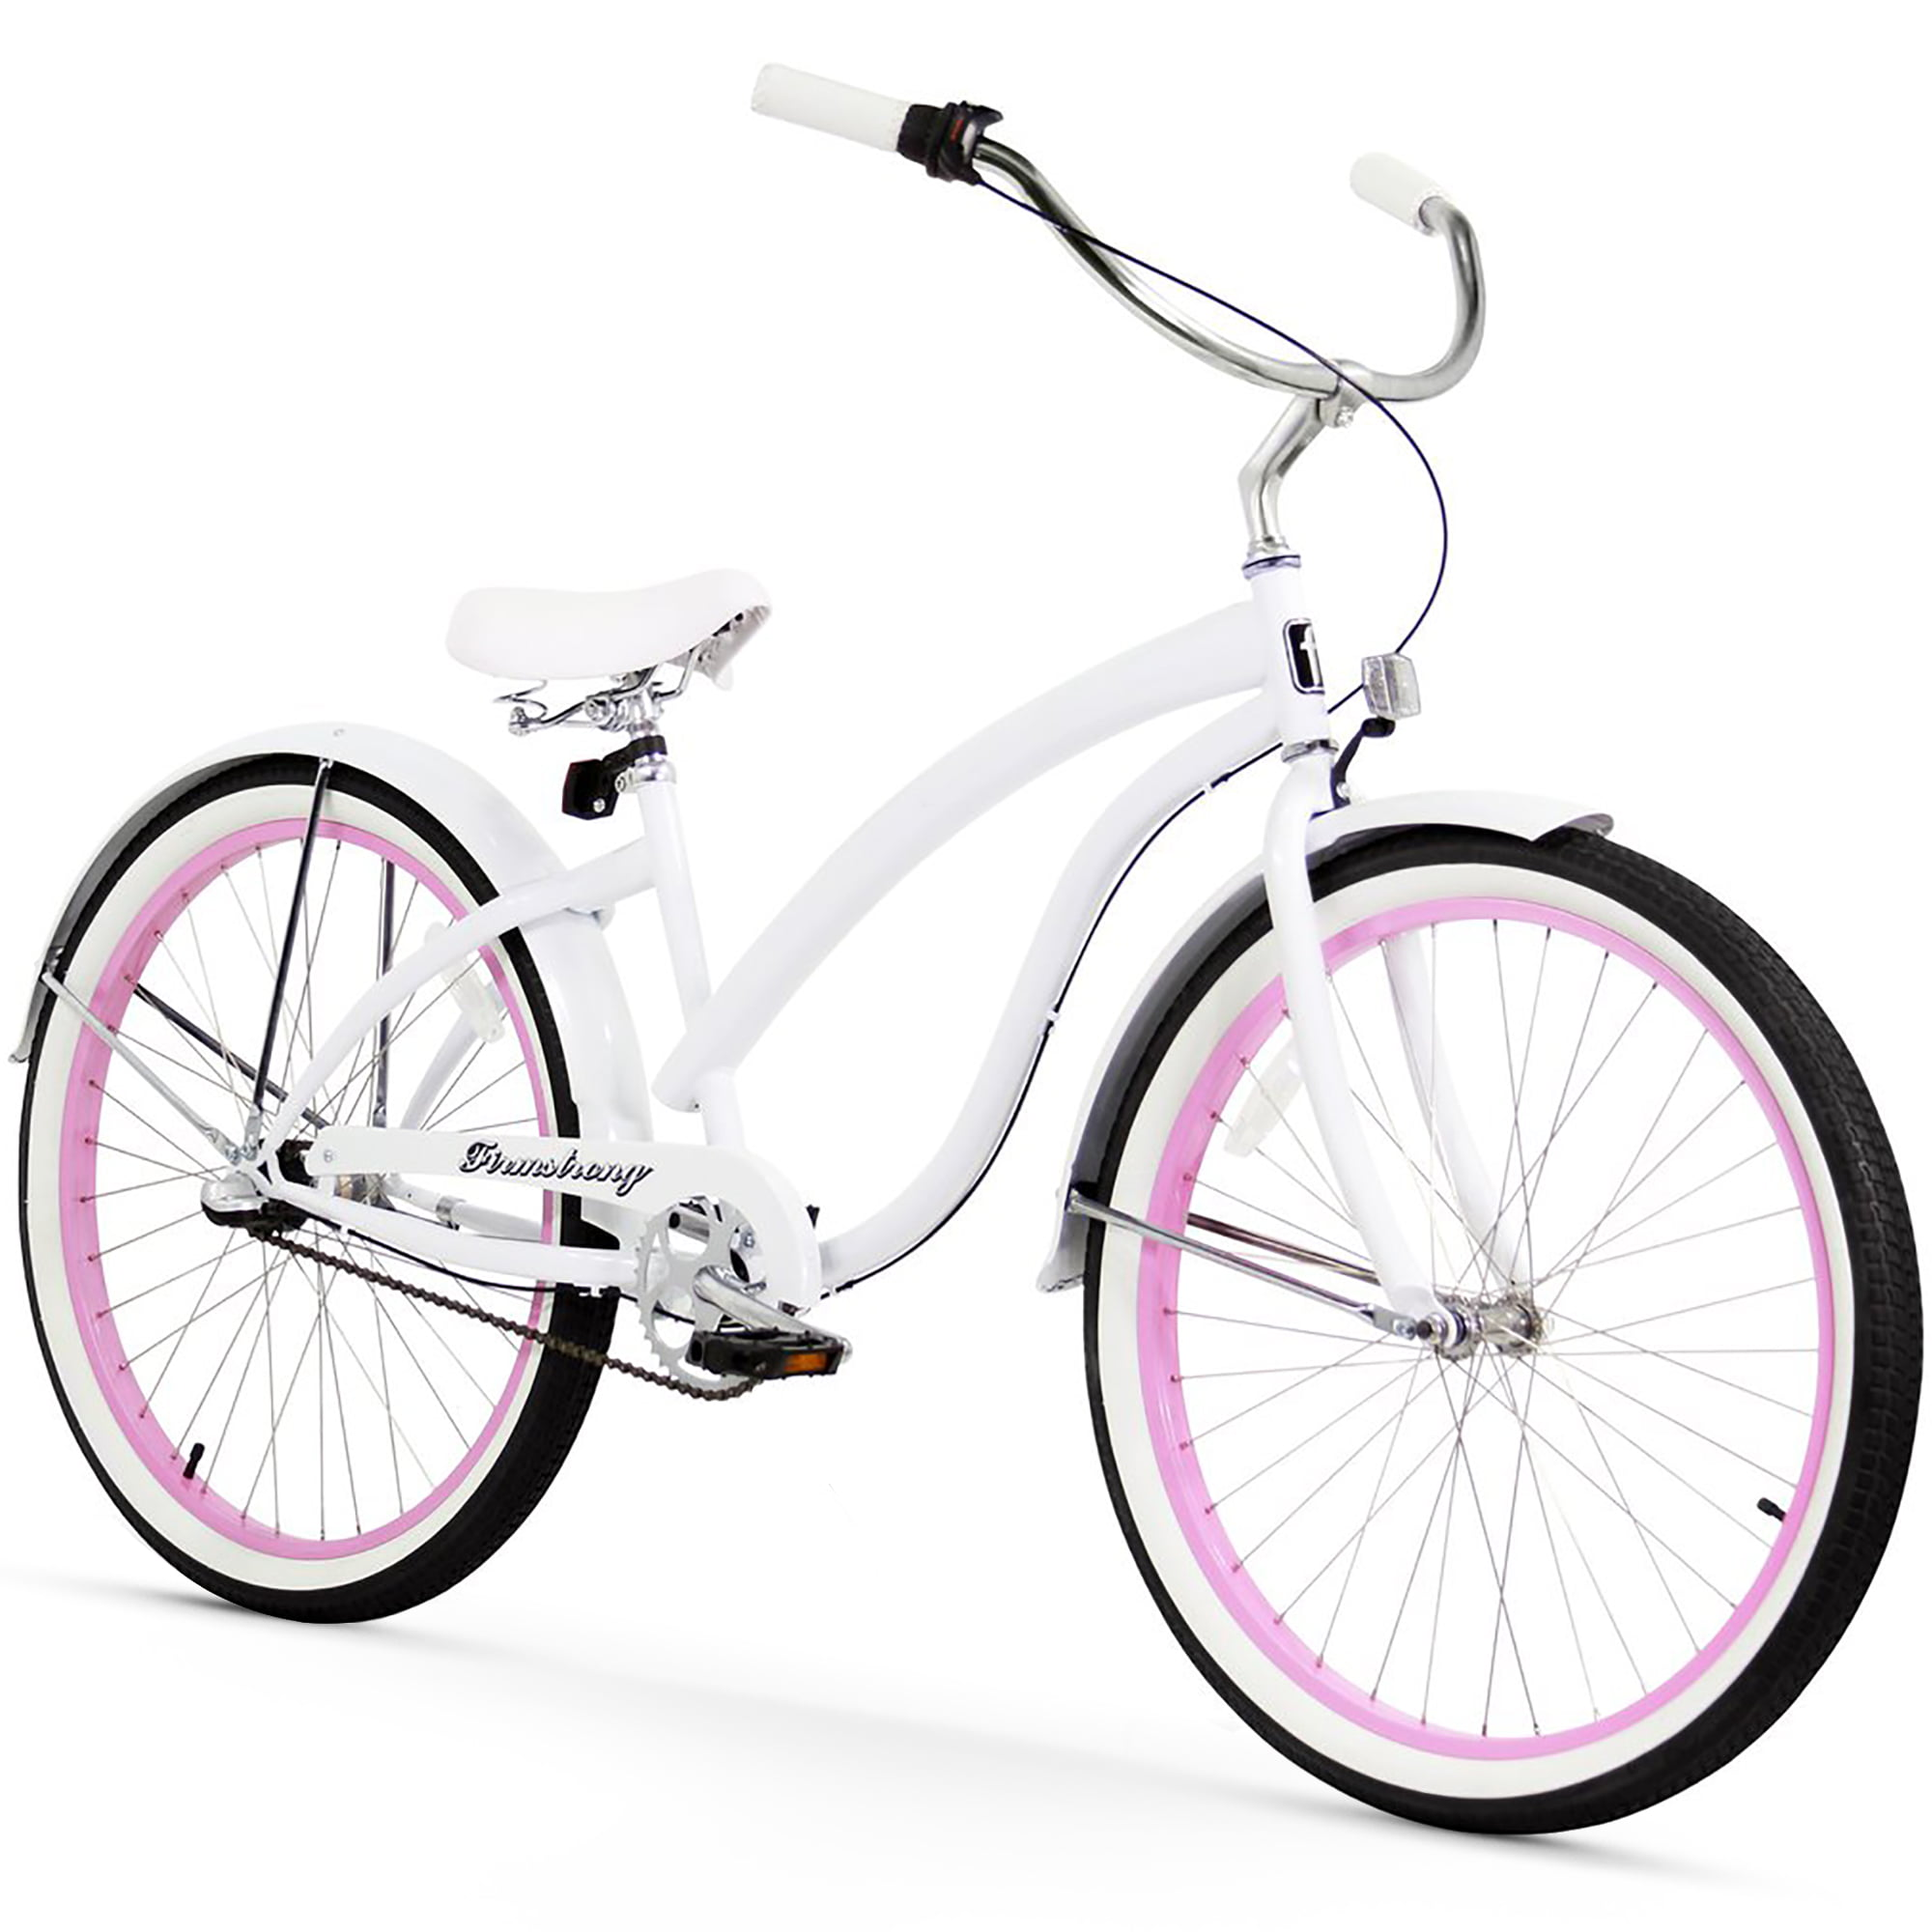 """26"""" Firmstrong Bella Fashionista Three Speed Women's Beach Cruiser Bicycle, Matte Black with Pink Rims by Supplier Generic"""